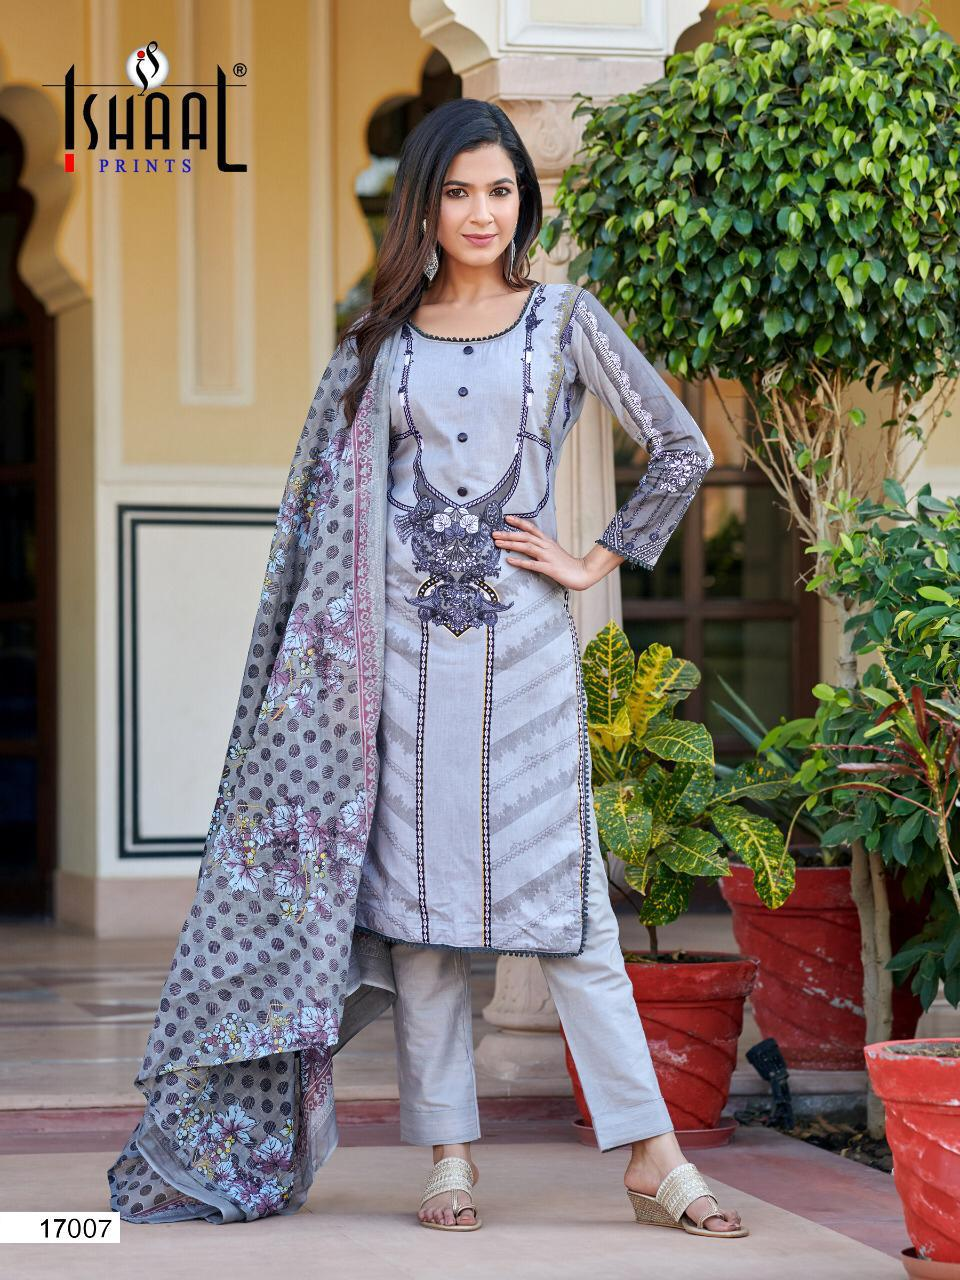 Ishaal Gulmohar 17 Pure Lawn collection 11